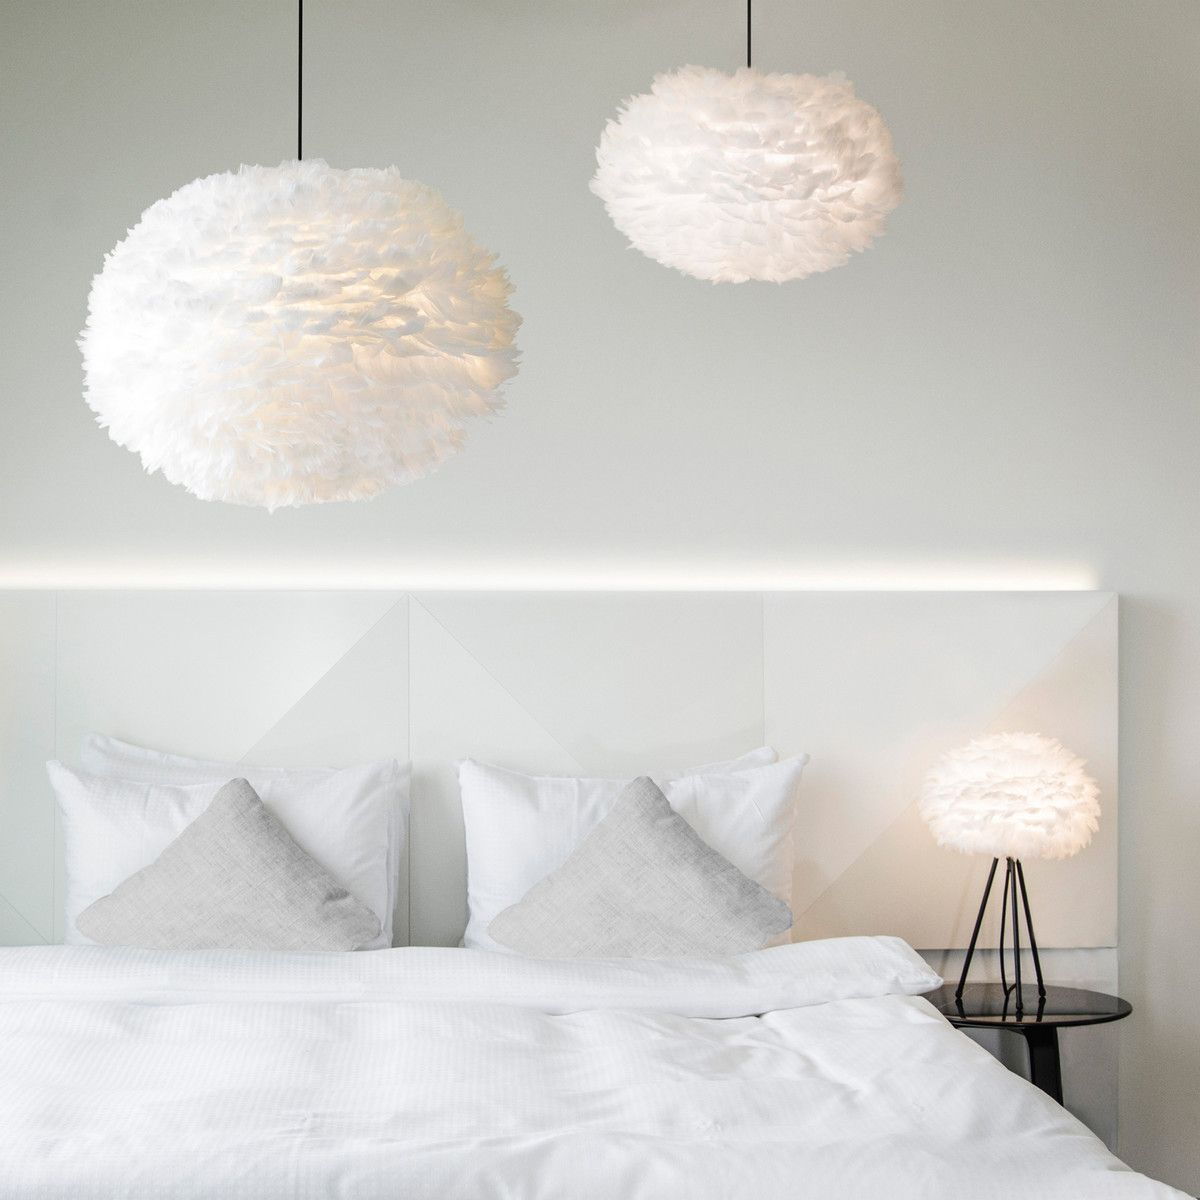 For A Romantic Dreamy Bedroom Light Fittings By Vita Eos In